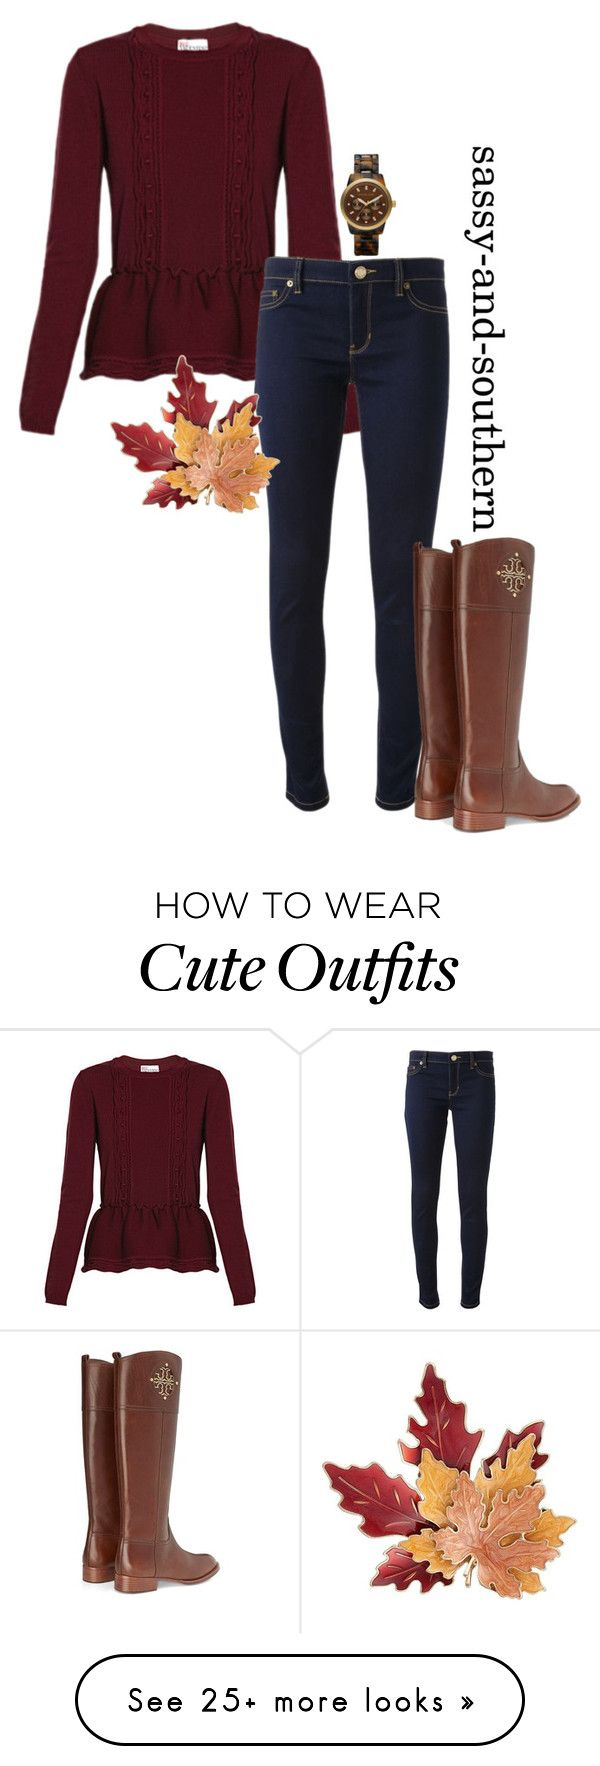 """""""cute fall outfit"""" by sassy-and-southern on Polyvore featuring RED Valentino, Michael Kors, Croft & Barrow, Tory Burch, MICHAEL Michael Kors and sassysouthernfall"""